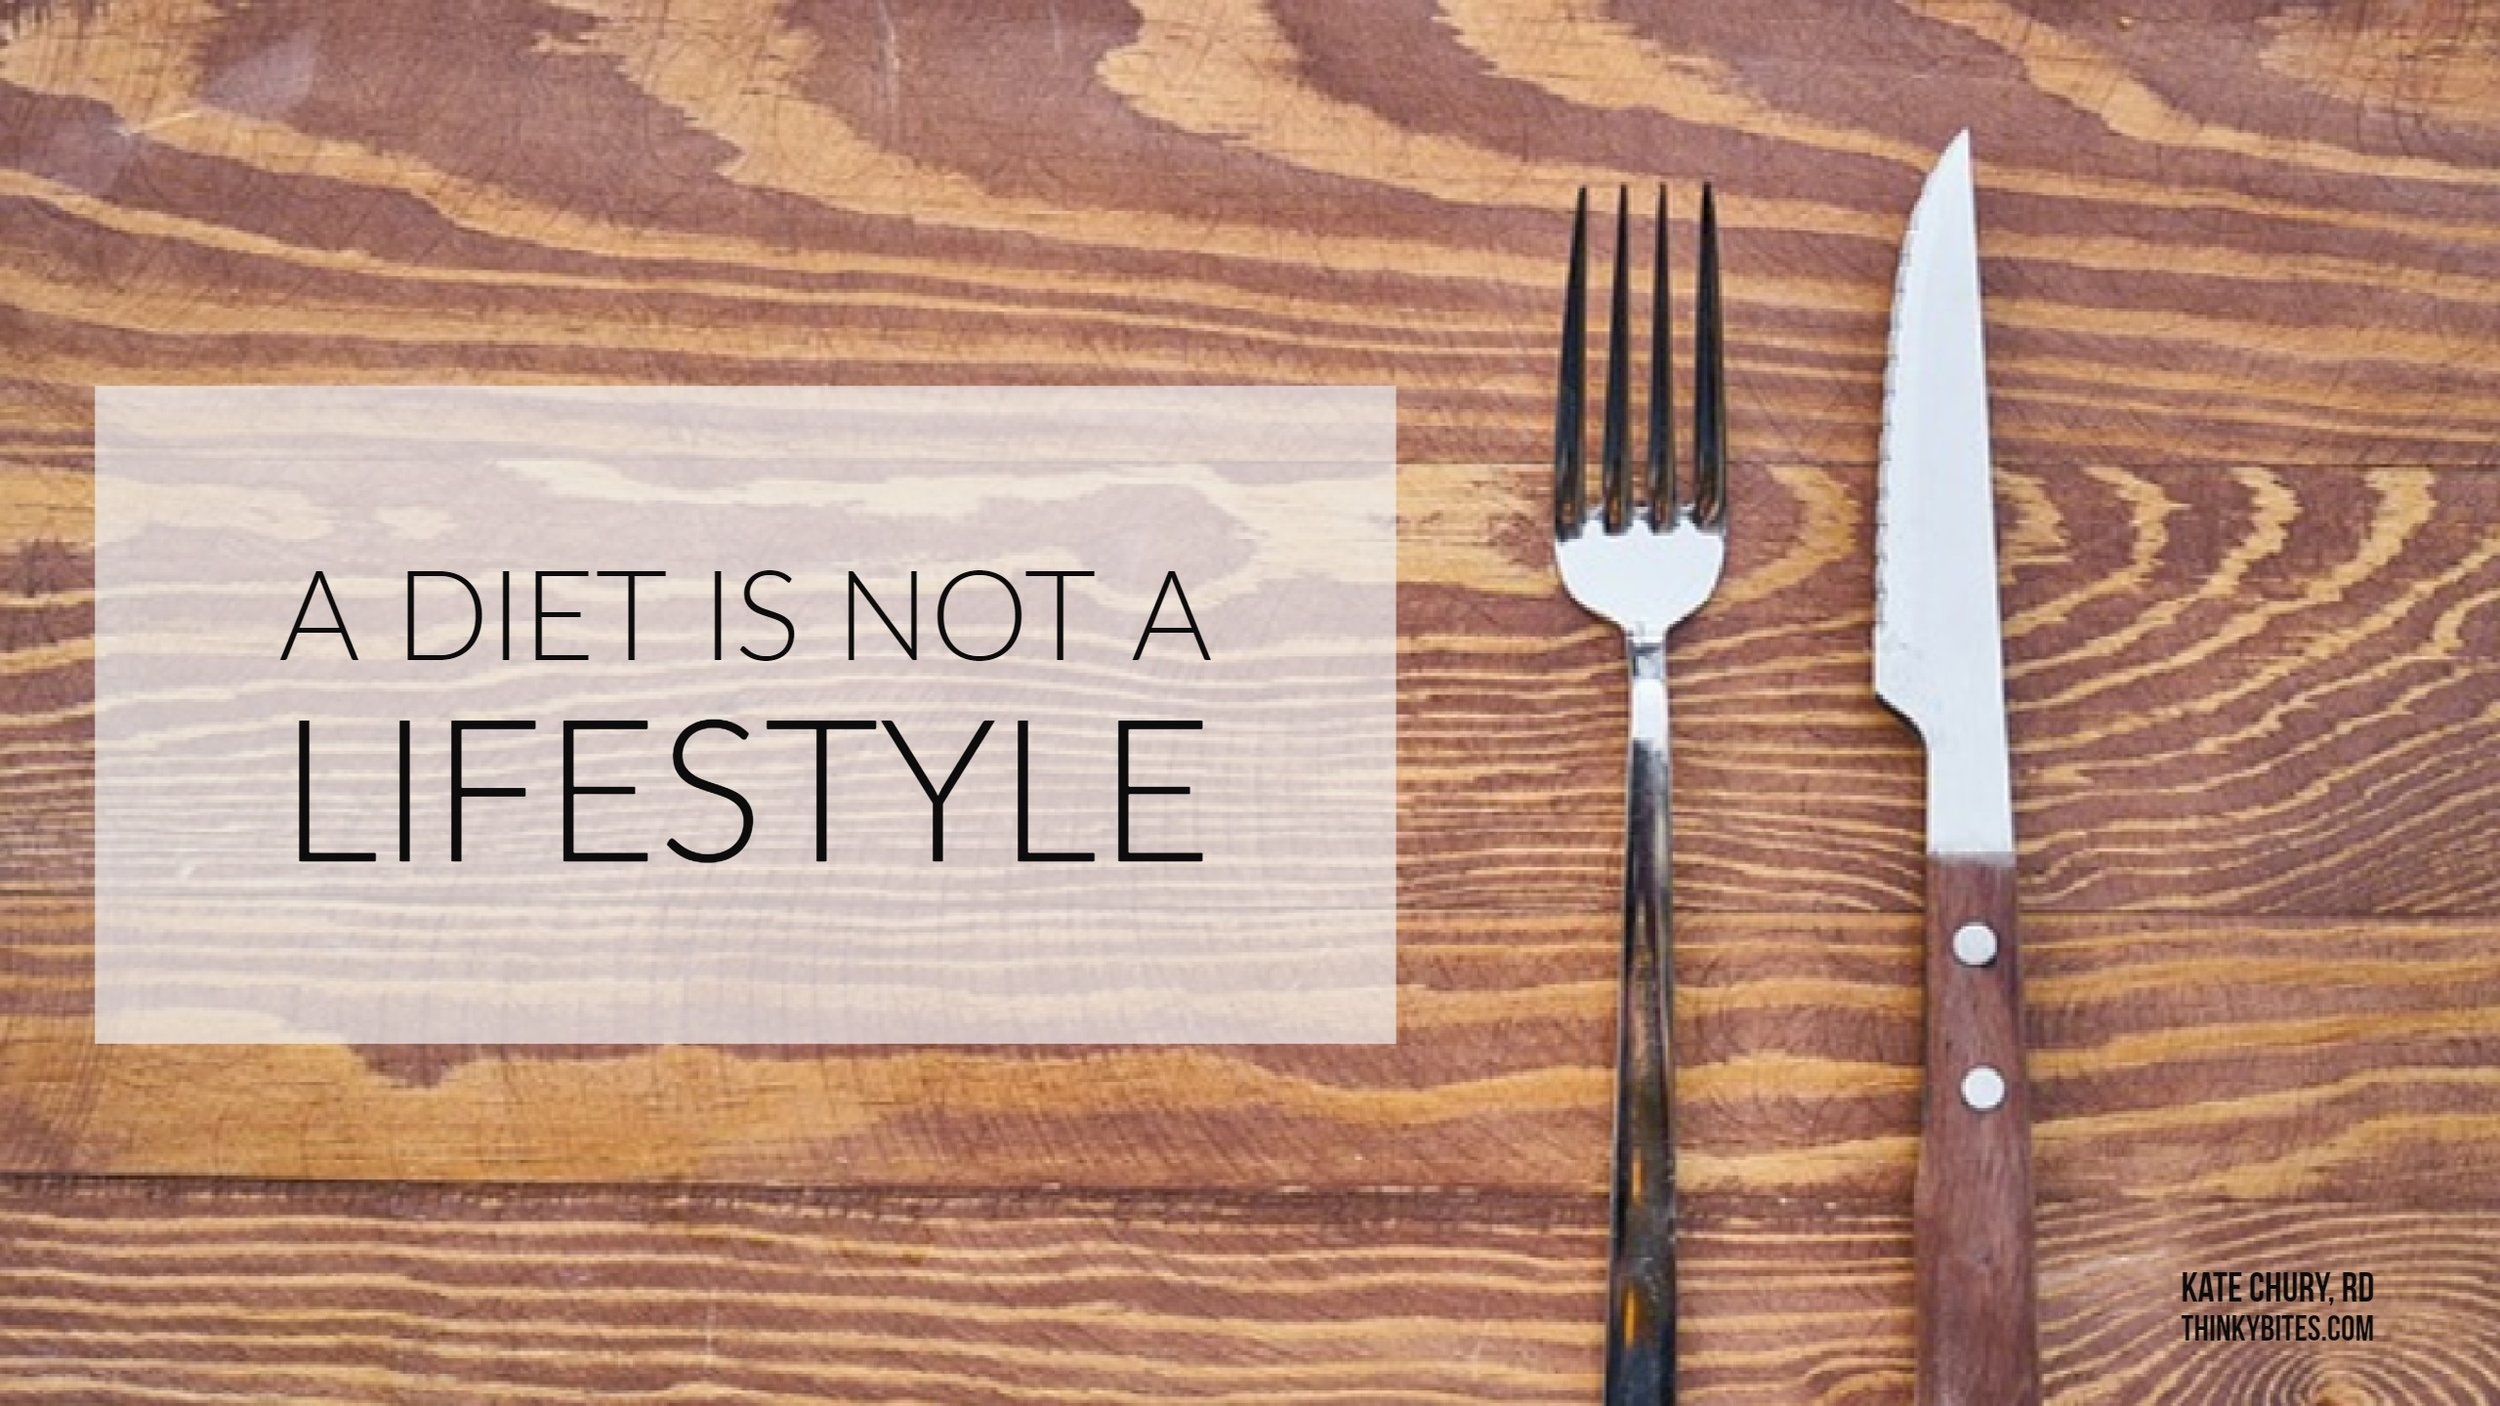 title diet is not lifestyle.jpg